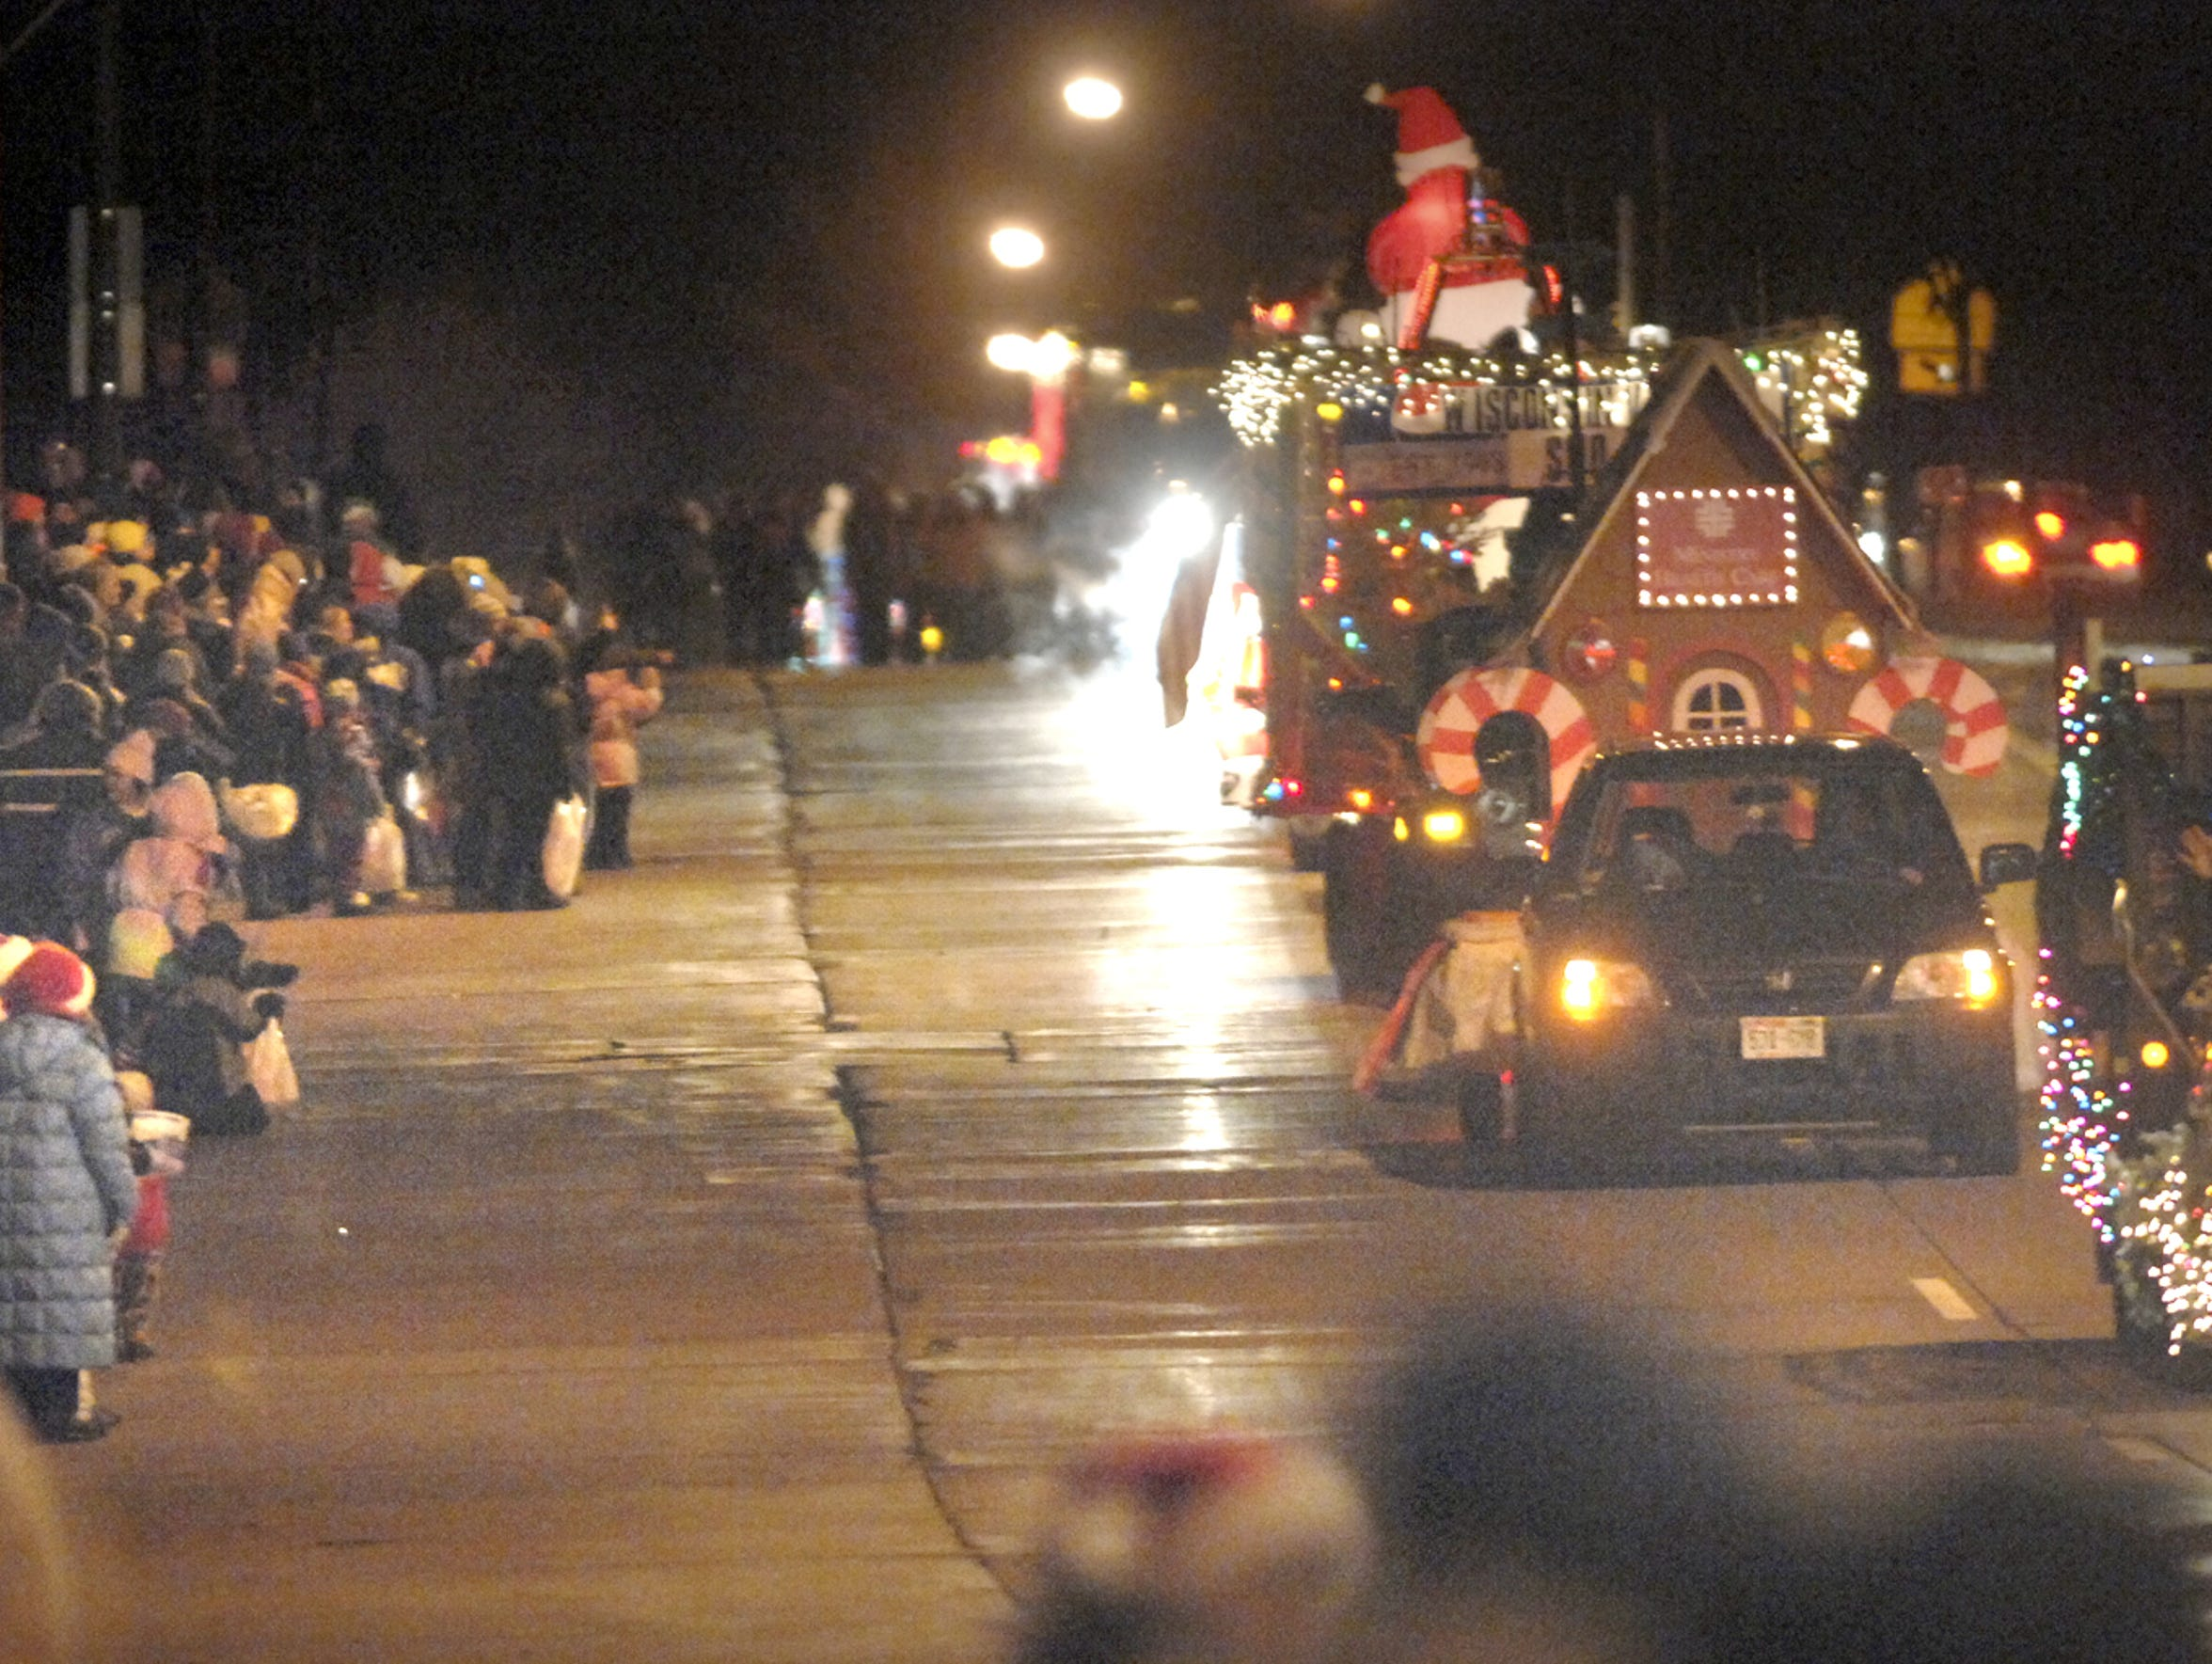 Wausau's Annual Holiday Parade will held Dec. 2nd at